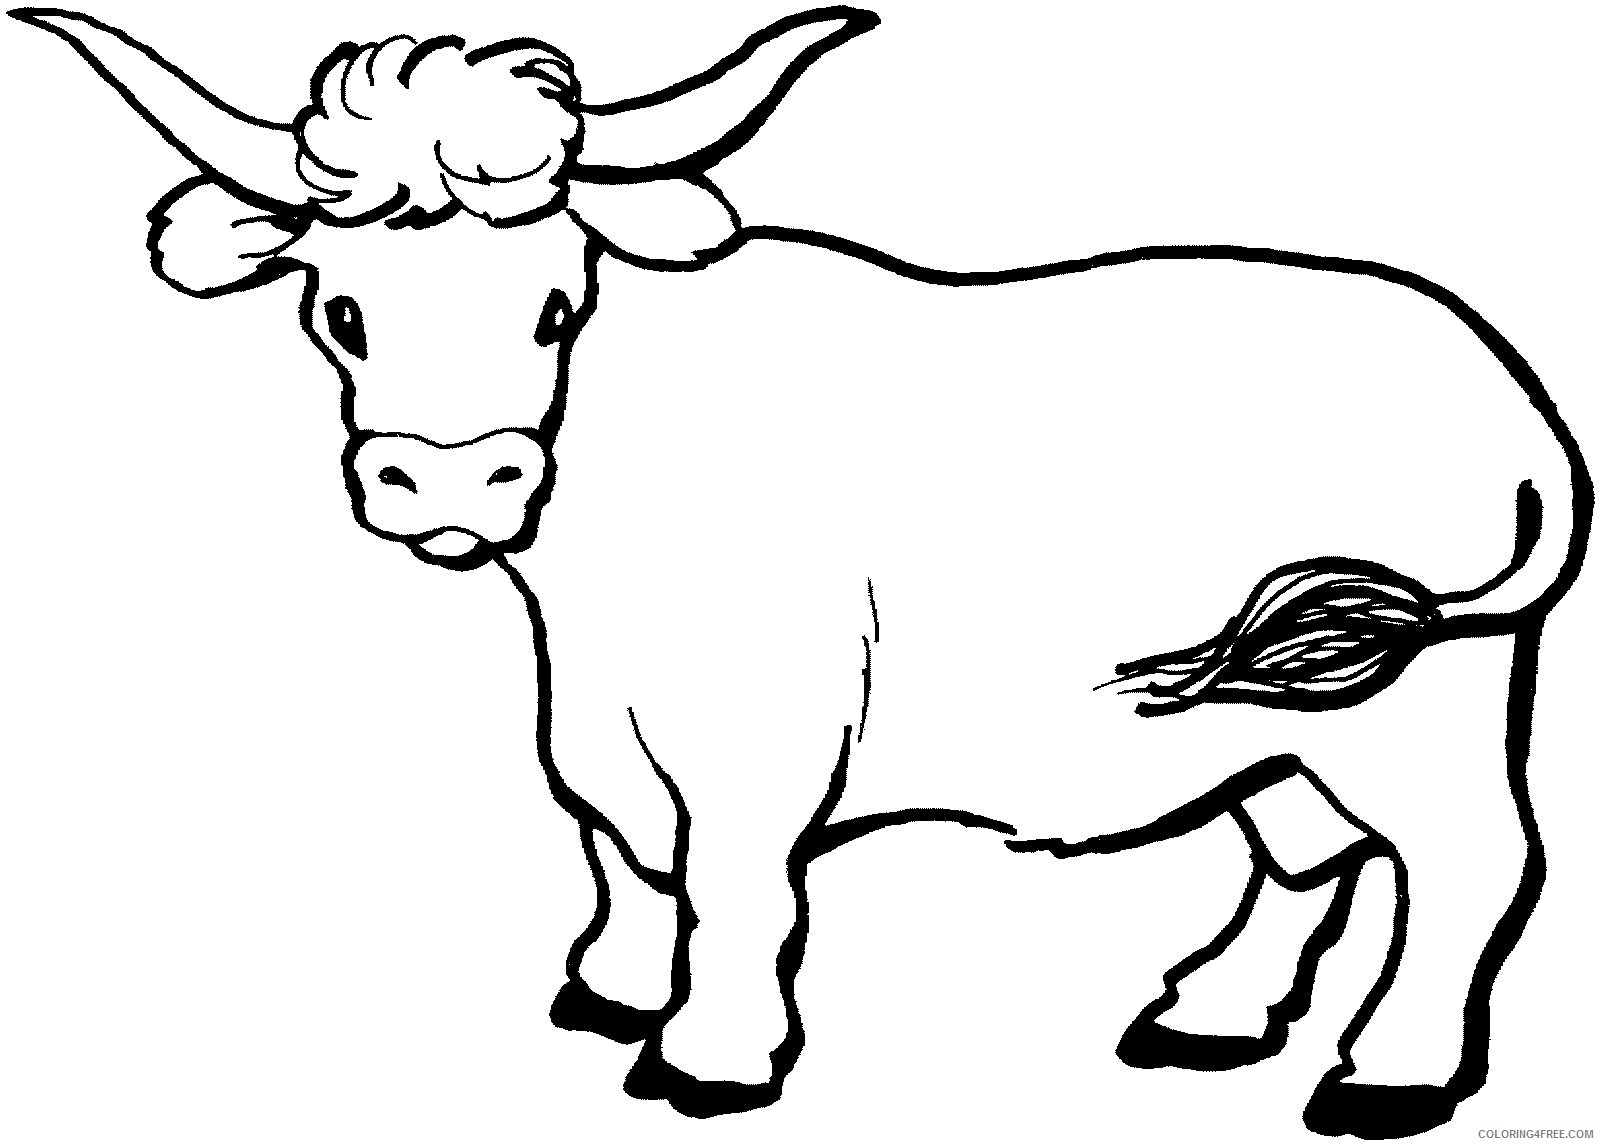 cow coloring pages with long horns Coloring4free